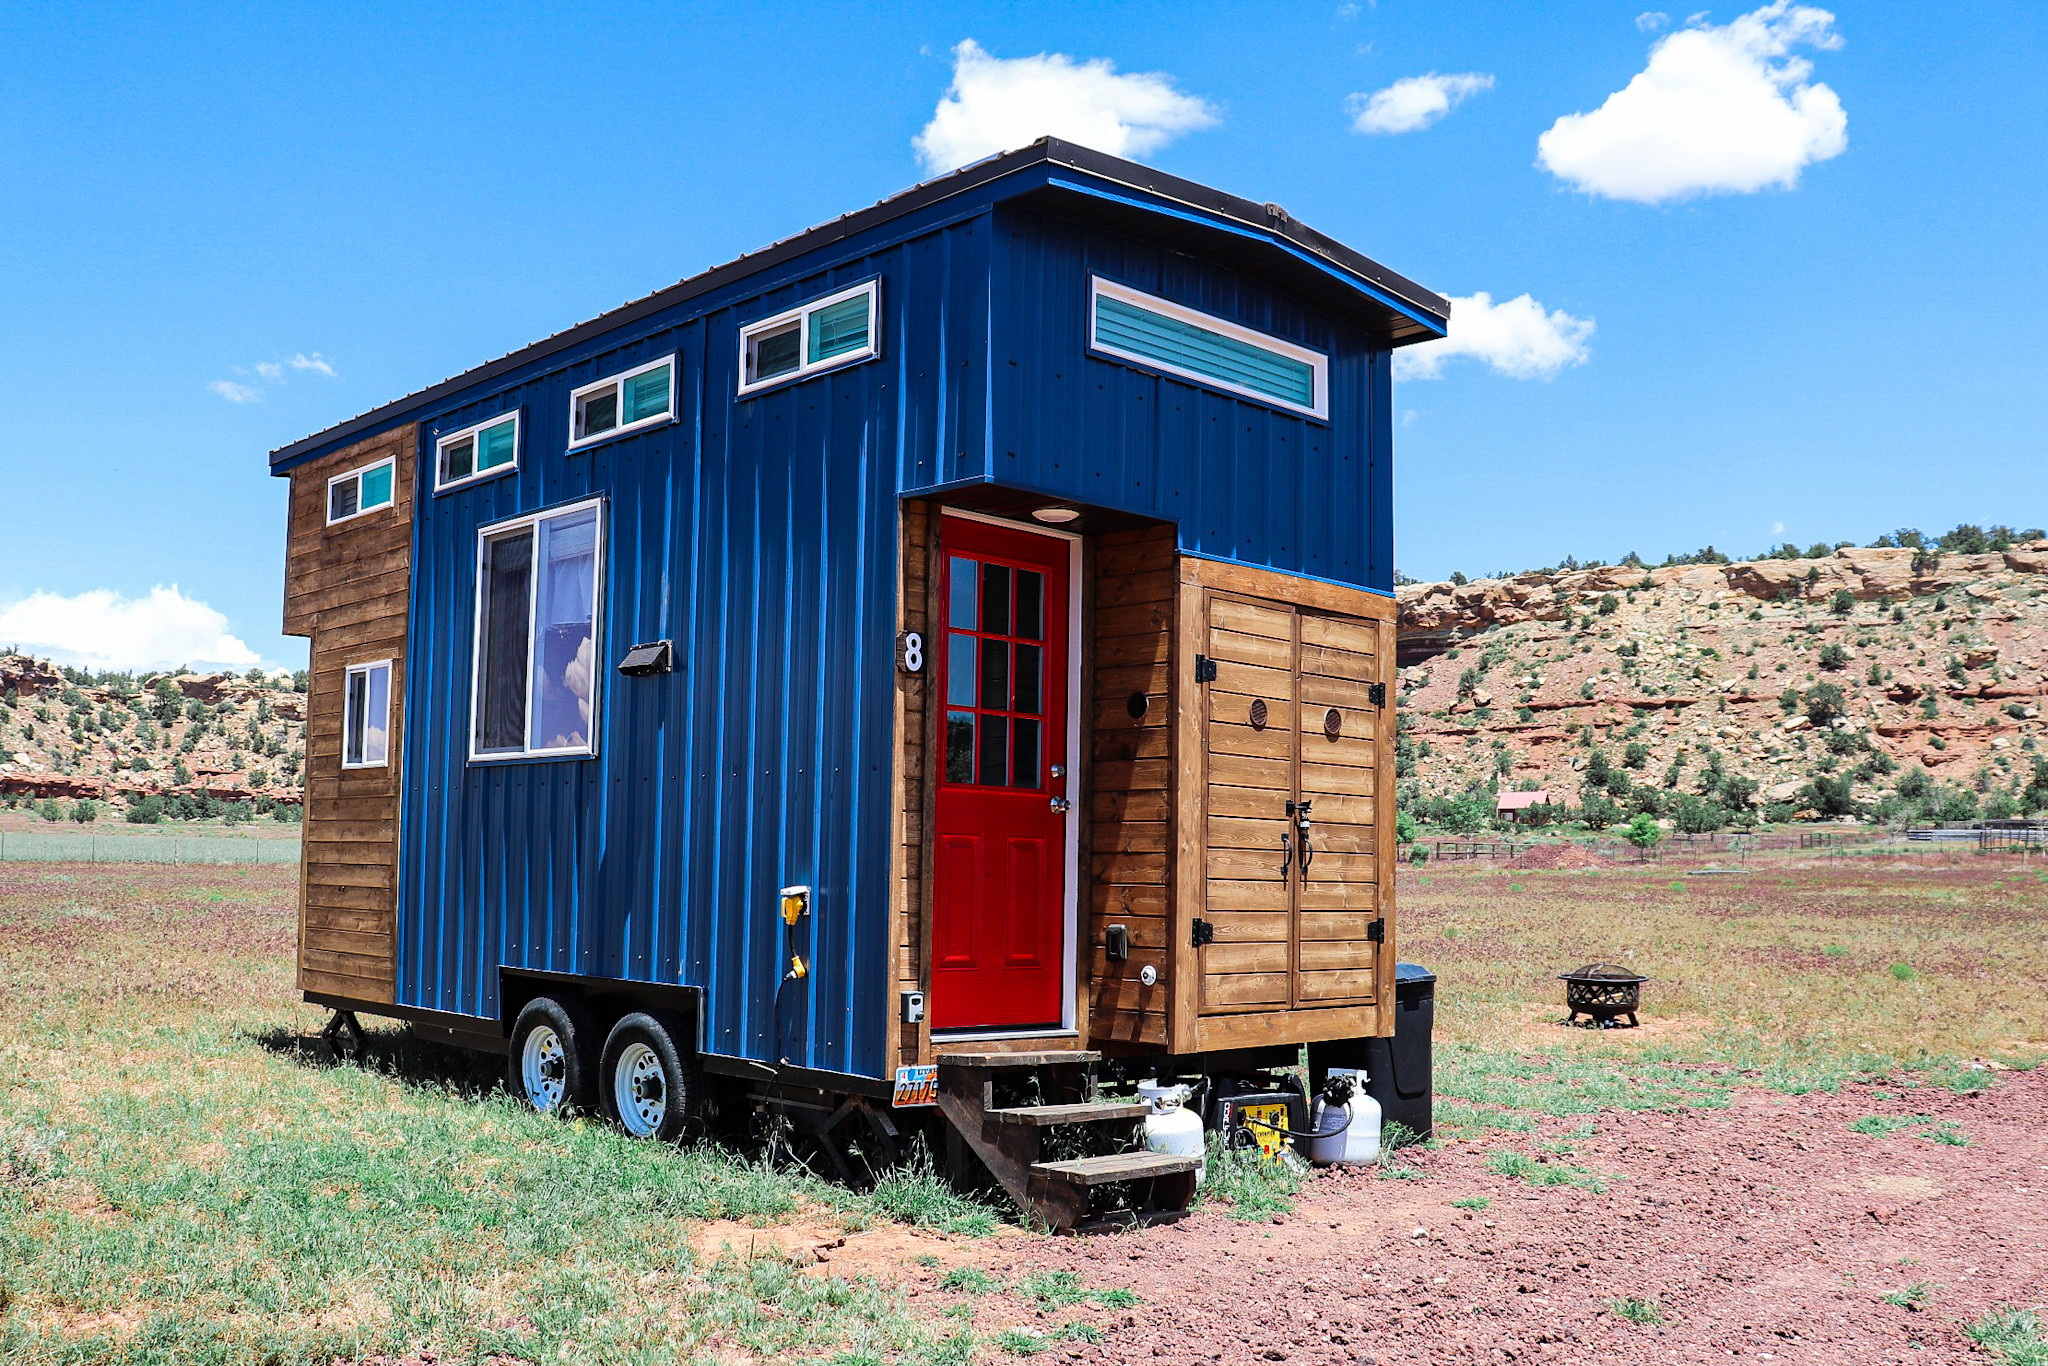 Nature experience in a Tiny Home